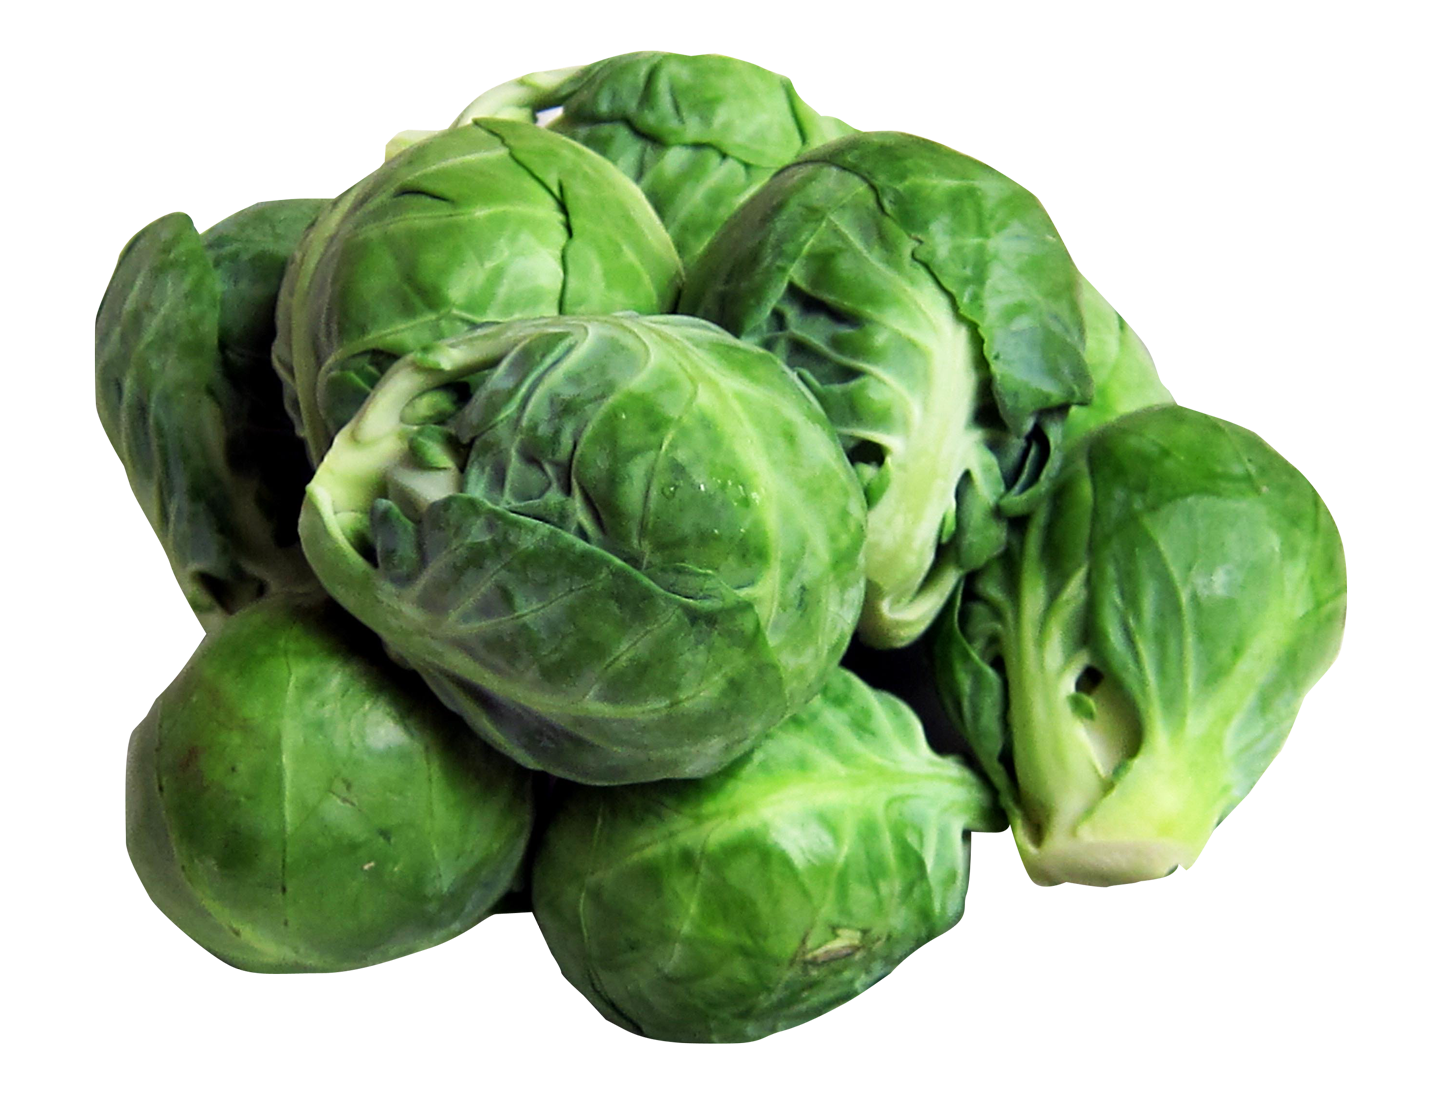 Brussels Sprouts PNG Image